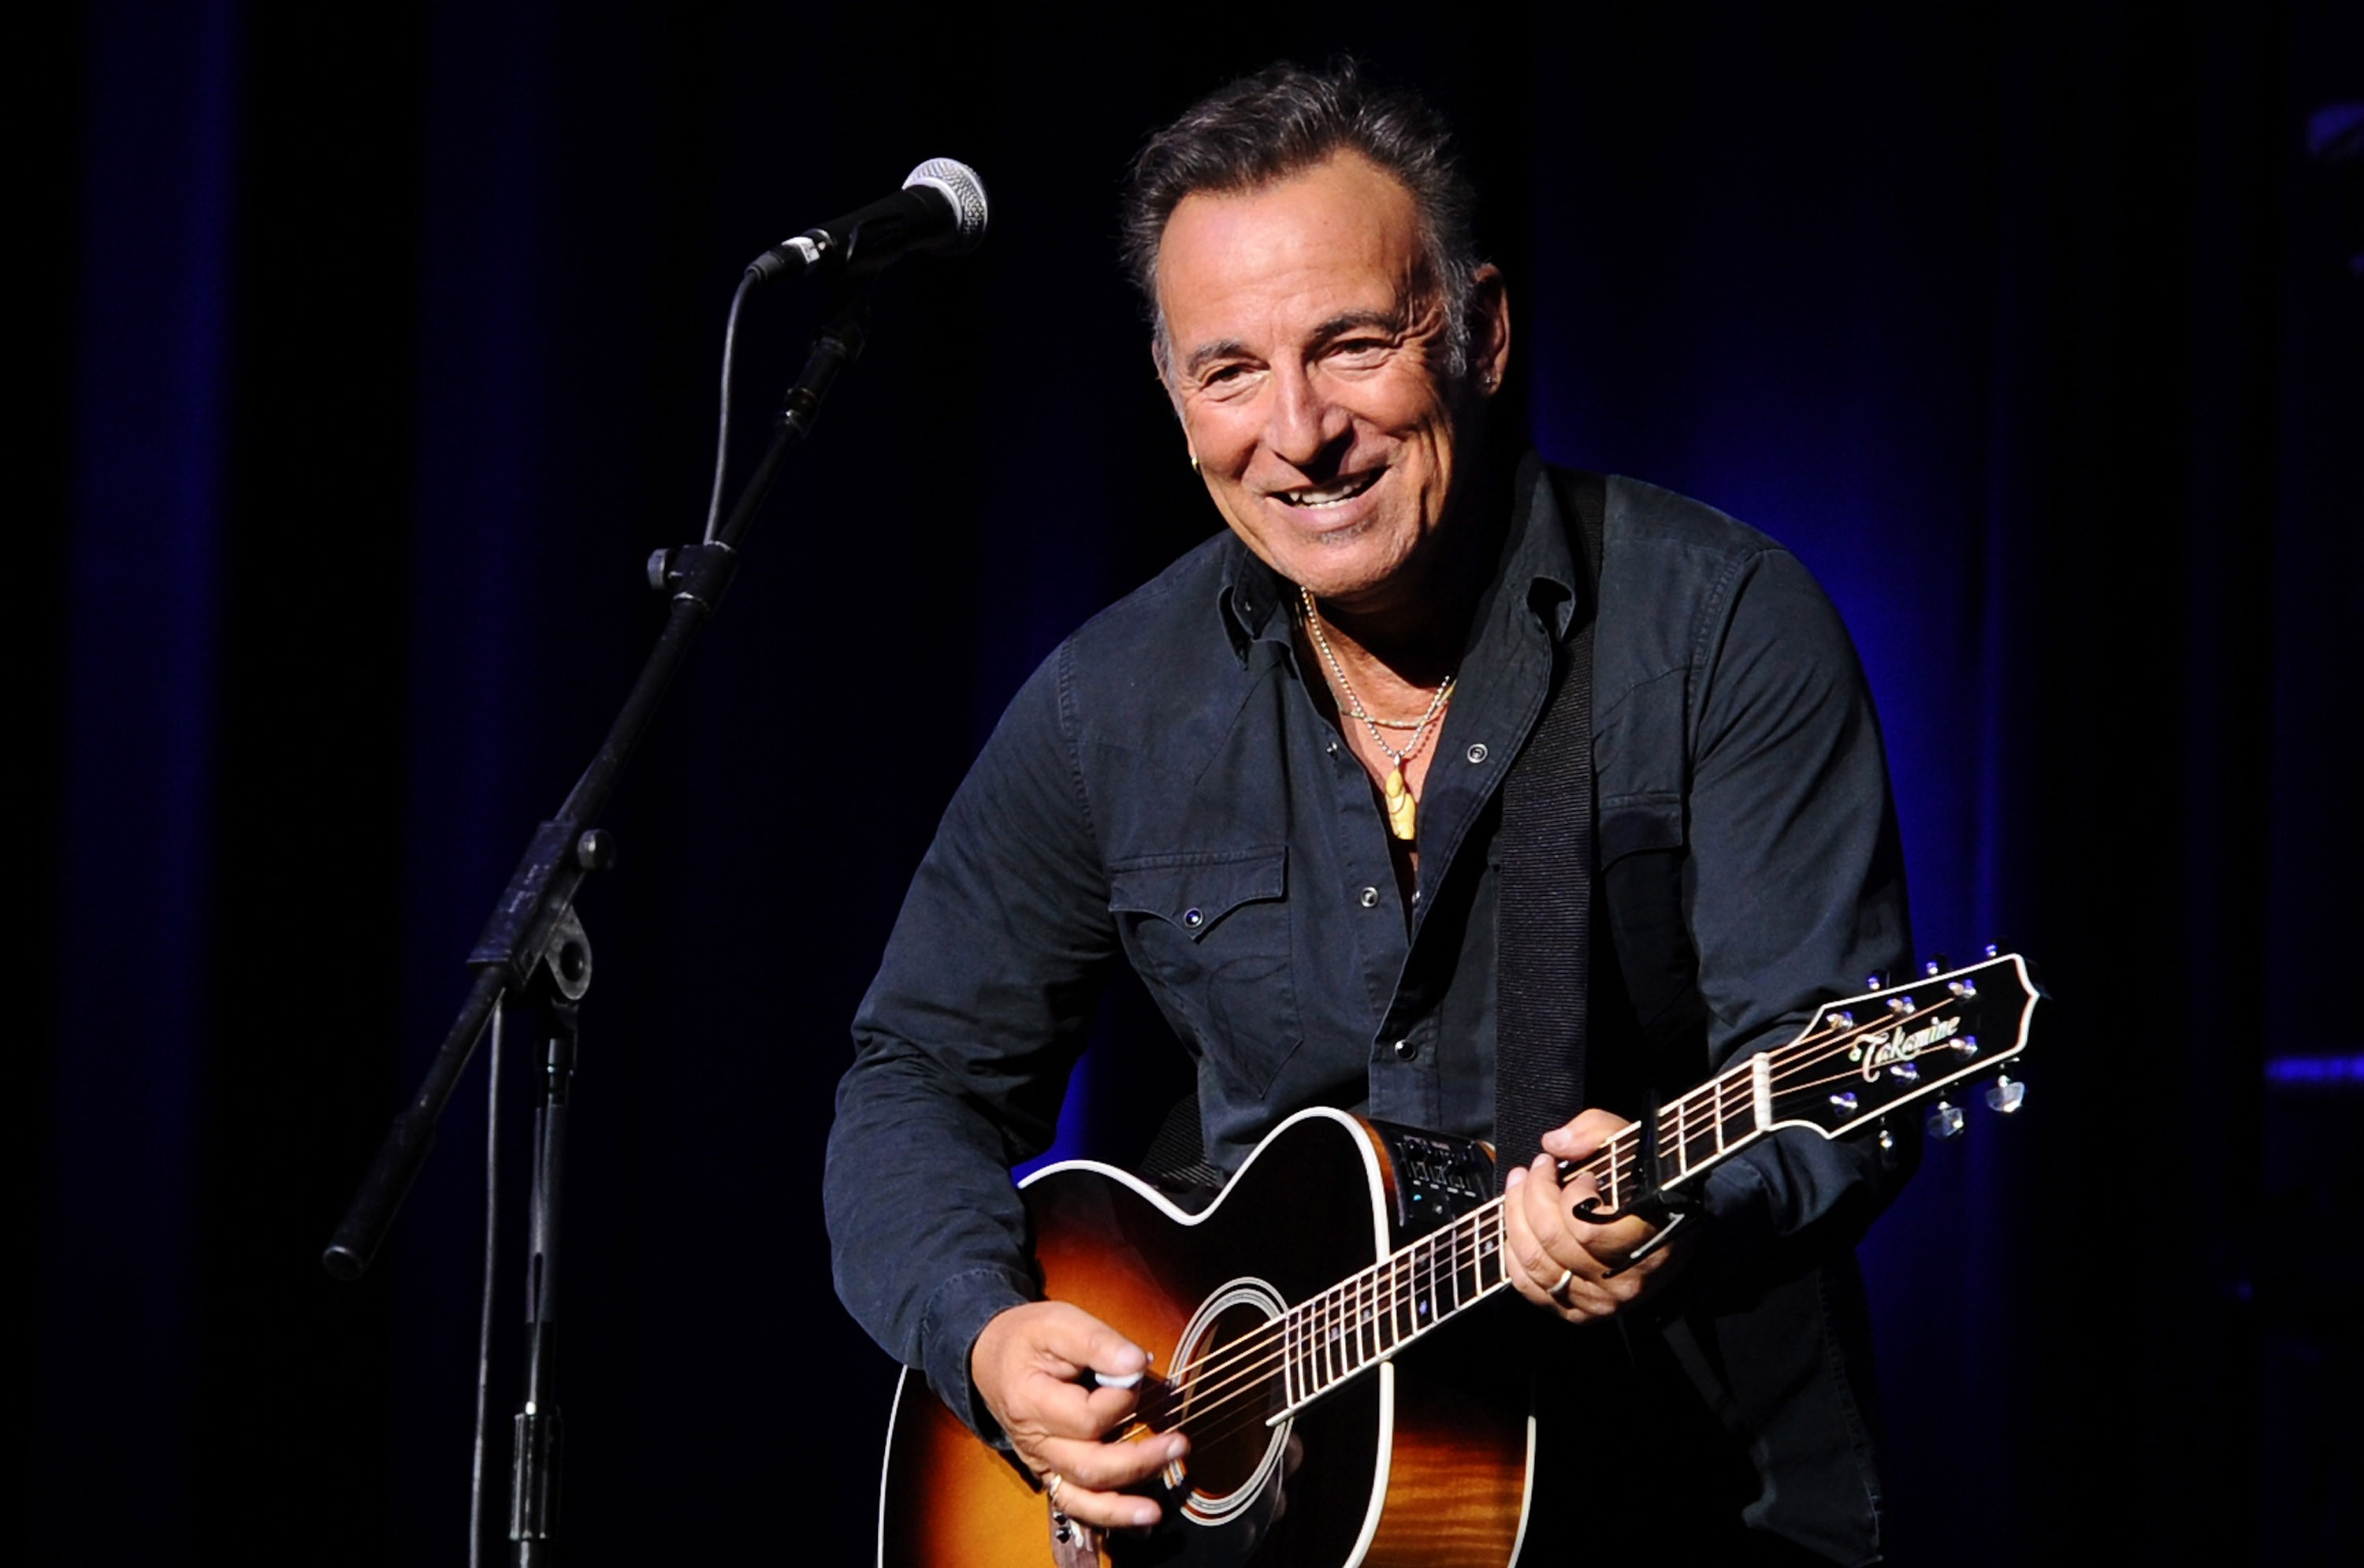 bruce-springsteen-ill-stand-by-you-blinded-by-the-light